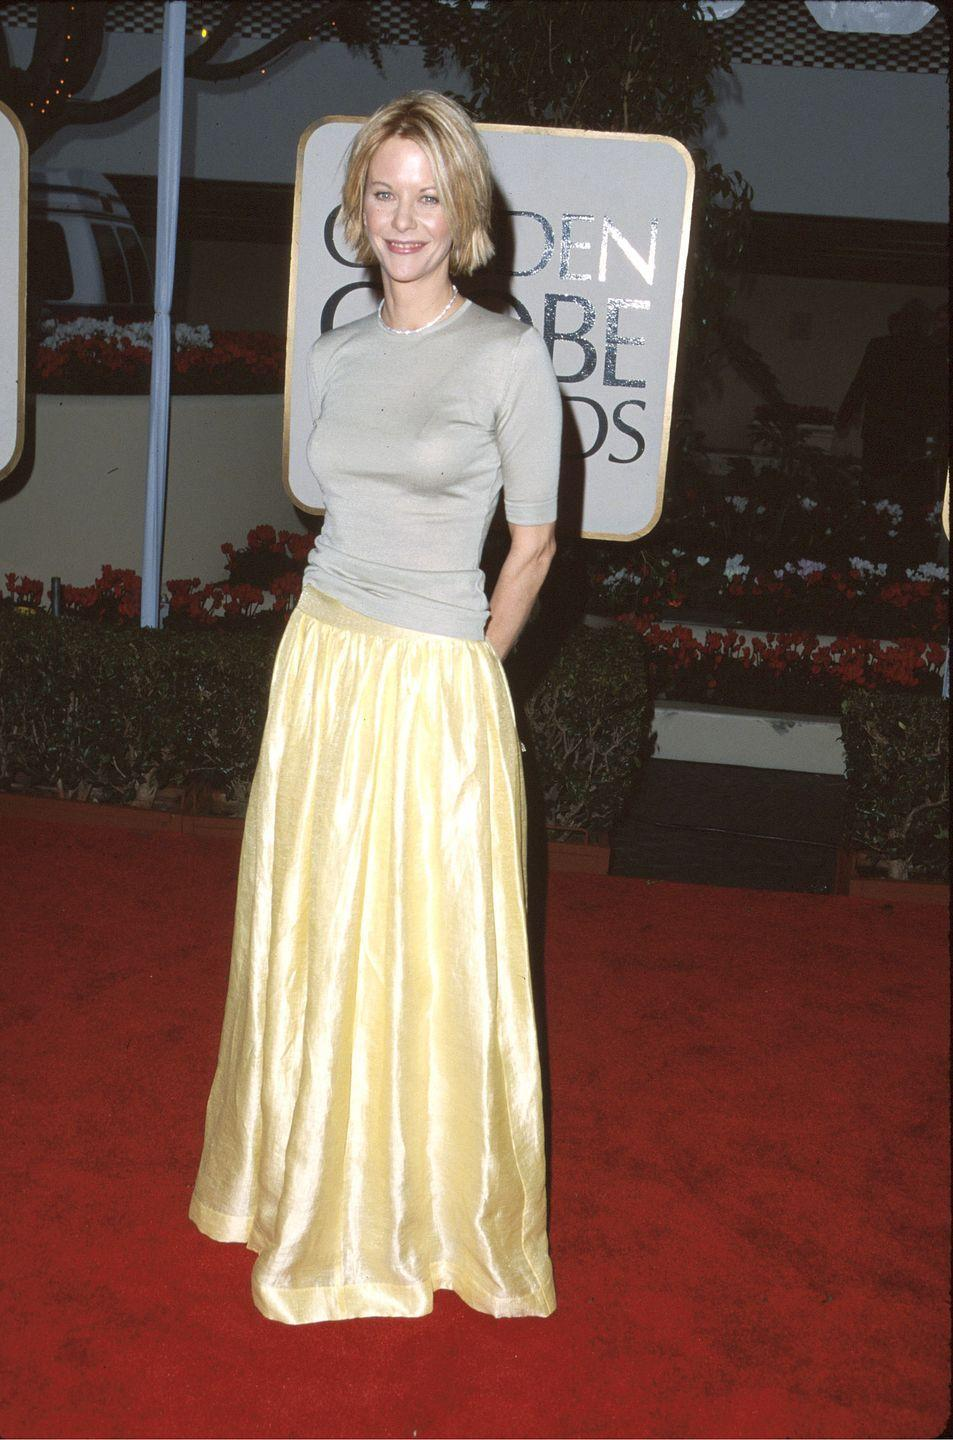 <p>Another red carpet, another maxi skirt—this time worn by Meg Ryan. She paired her pastel yellow one with a short-sleeve knit for a surprisingly low-key Golden Globes 'fit. </p>